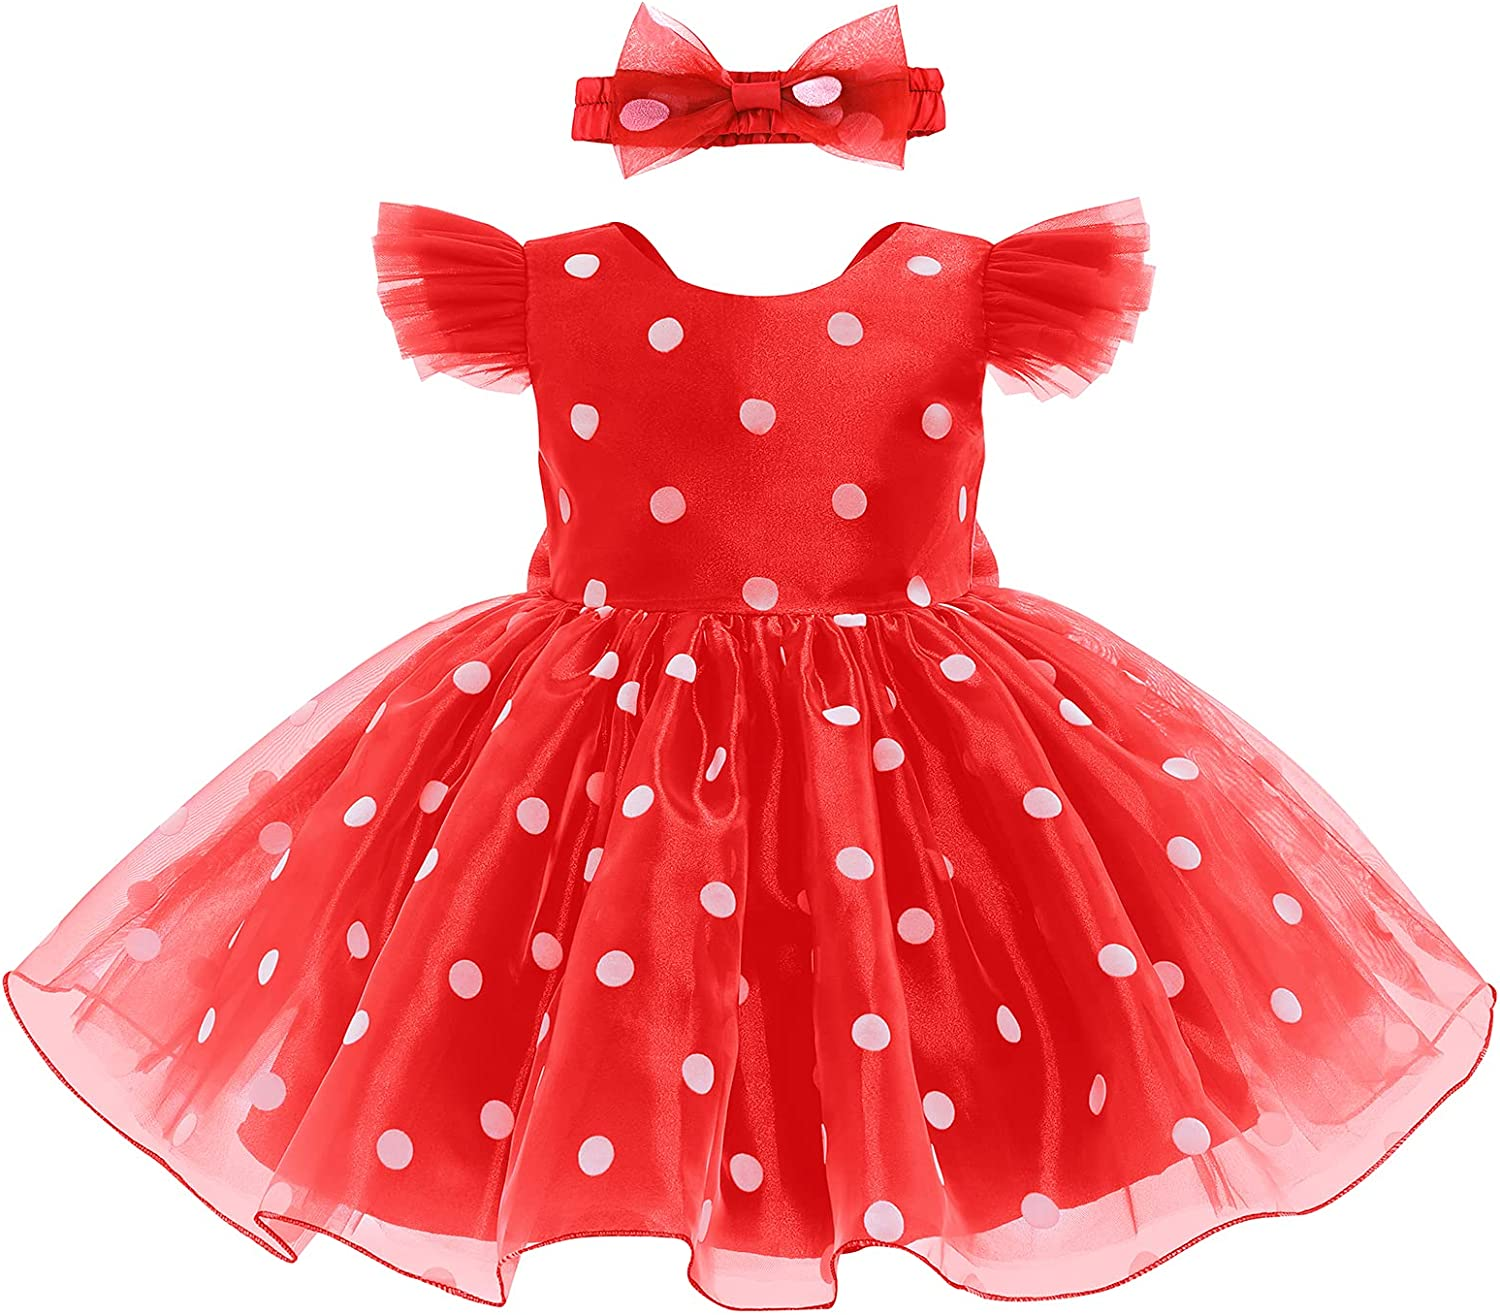 OBEEII Girls Party Dress Polka Dot Bowknot Ruffled Short Gown Wedding Birthday Pageant Special Occasion